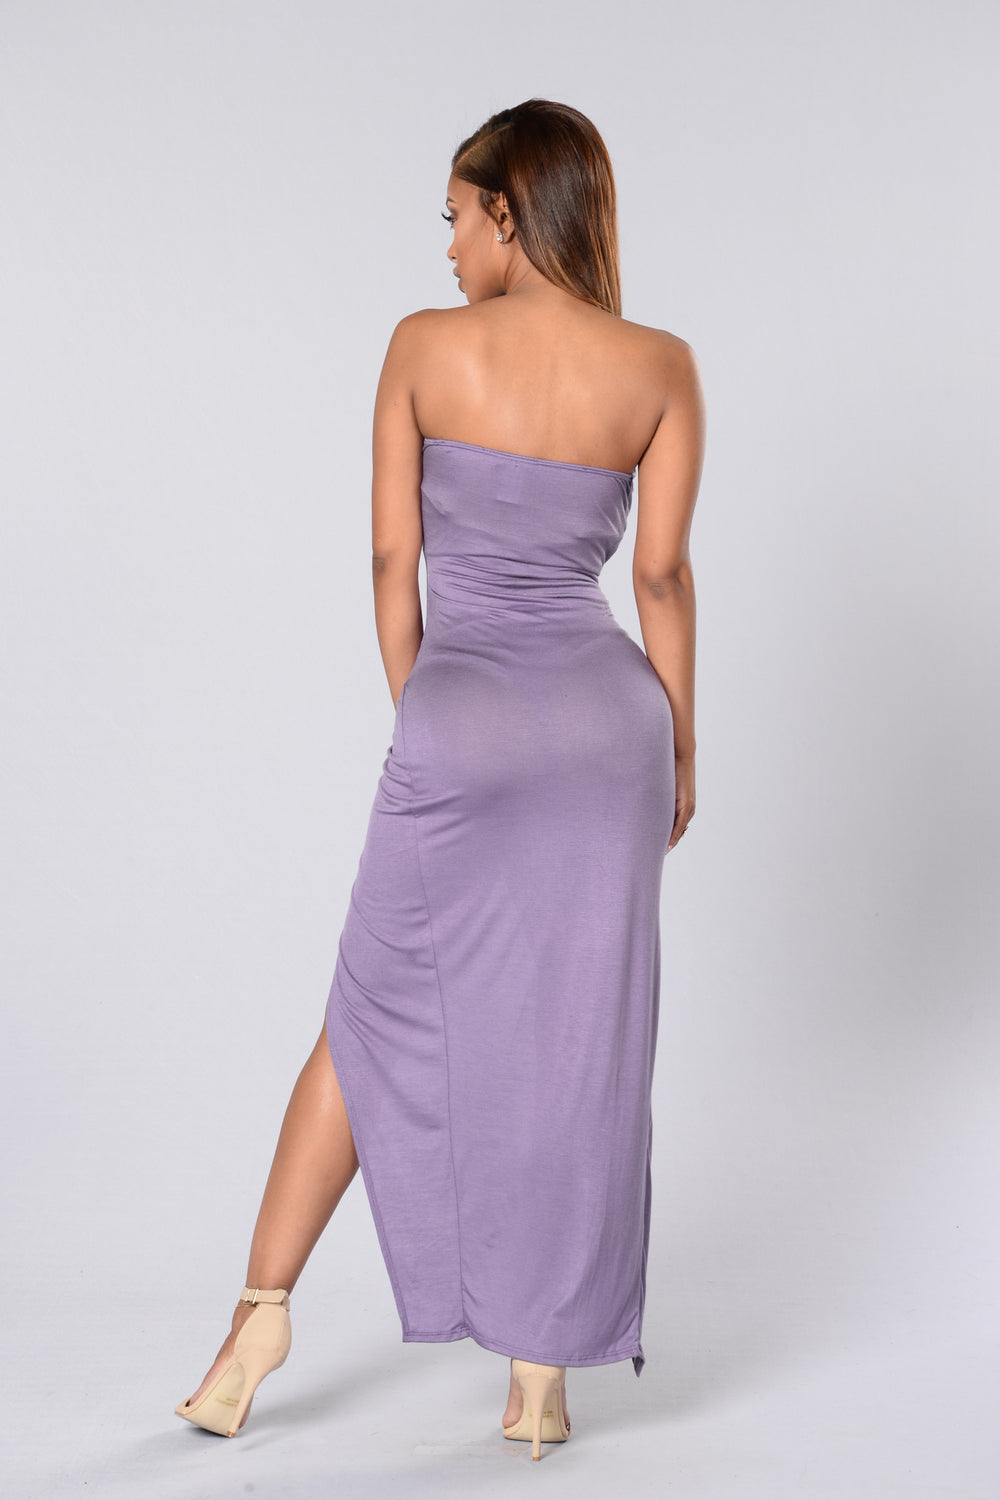 Hit or Miss Tube Dress - Lavender